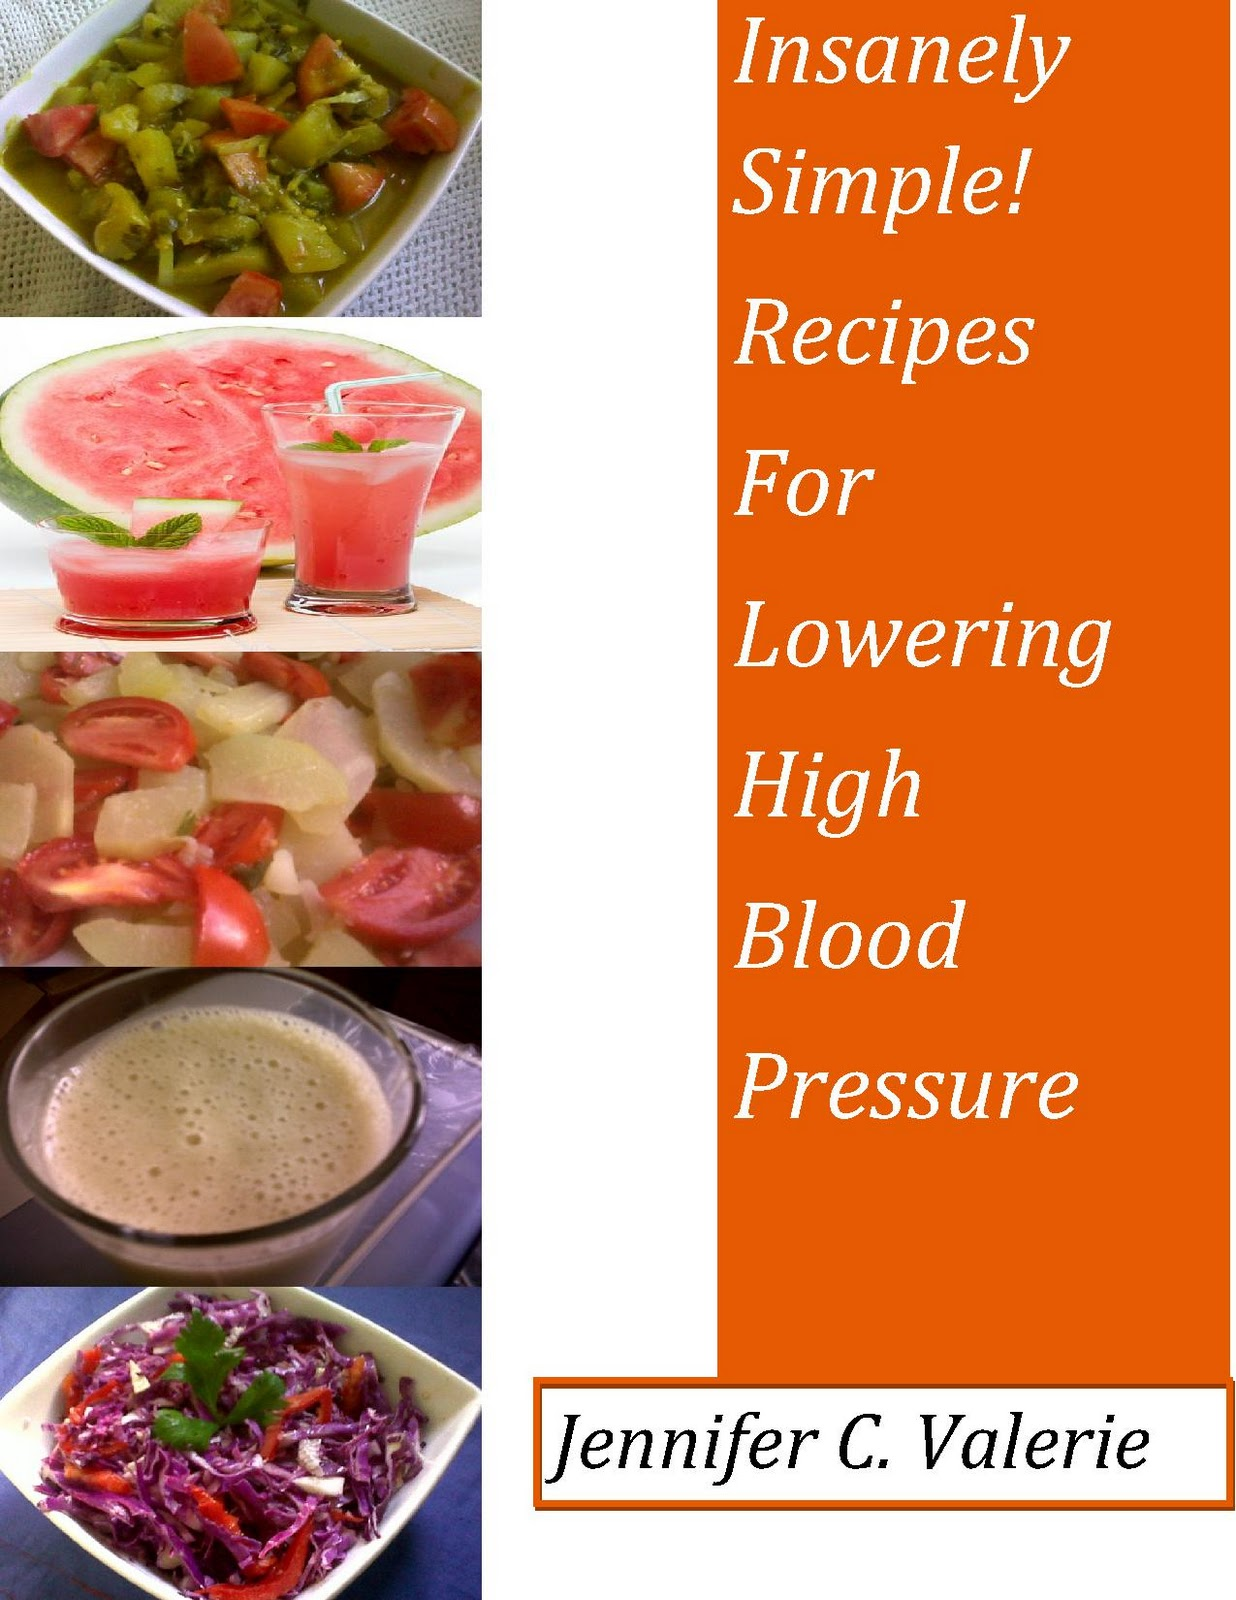 Insanely simple recipe books high blood pressure a combination of drinks salads and cooked recipes to help combat high blood pressure 120 recipes forumfinder Gallery